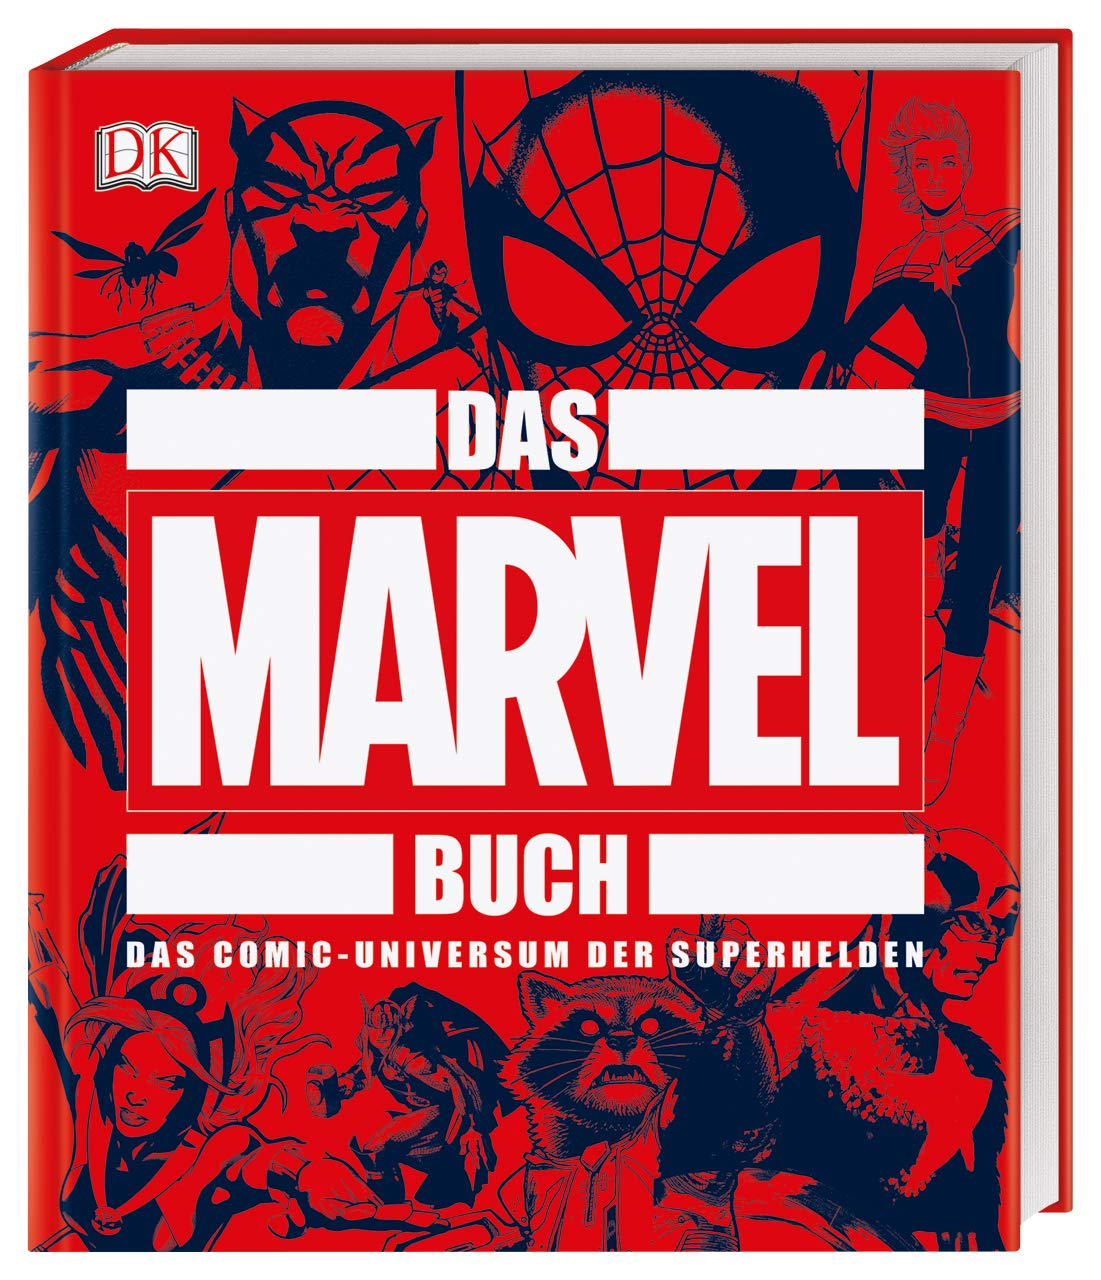 Big Ideas. Das MARVEL Buch  Das Comic Universum Der Superhelden